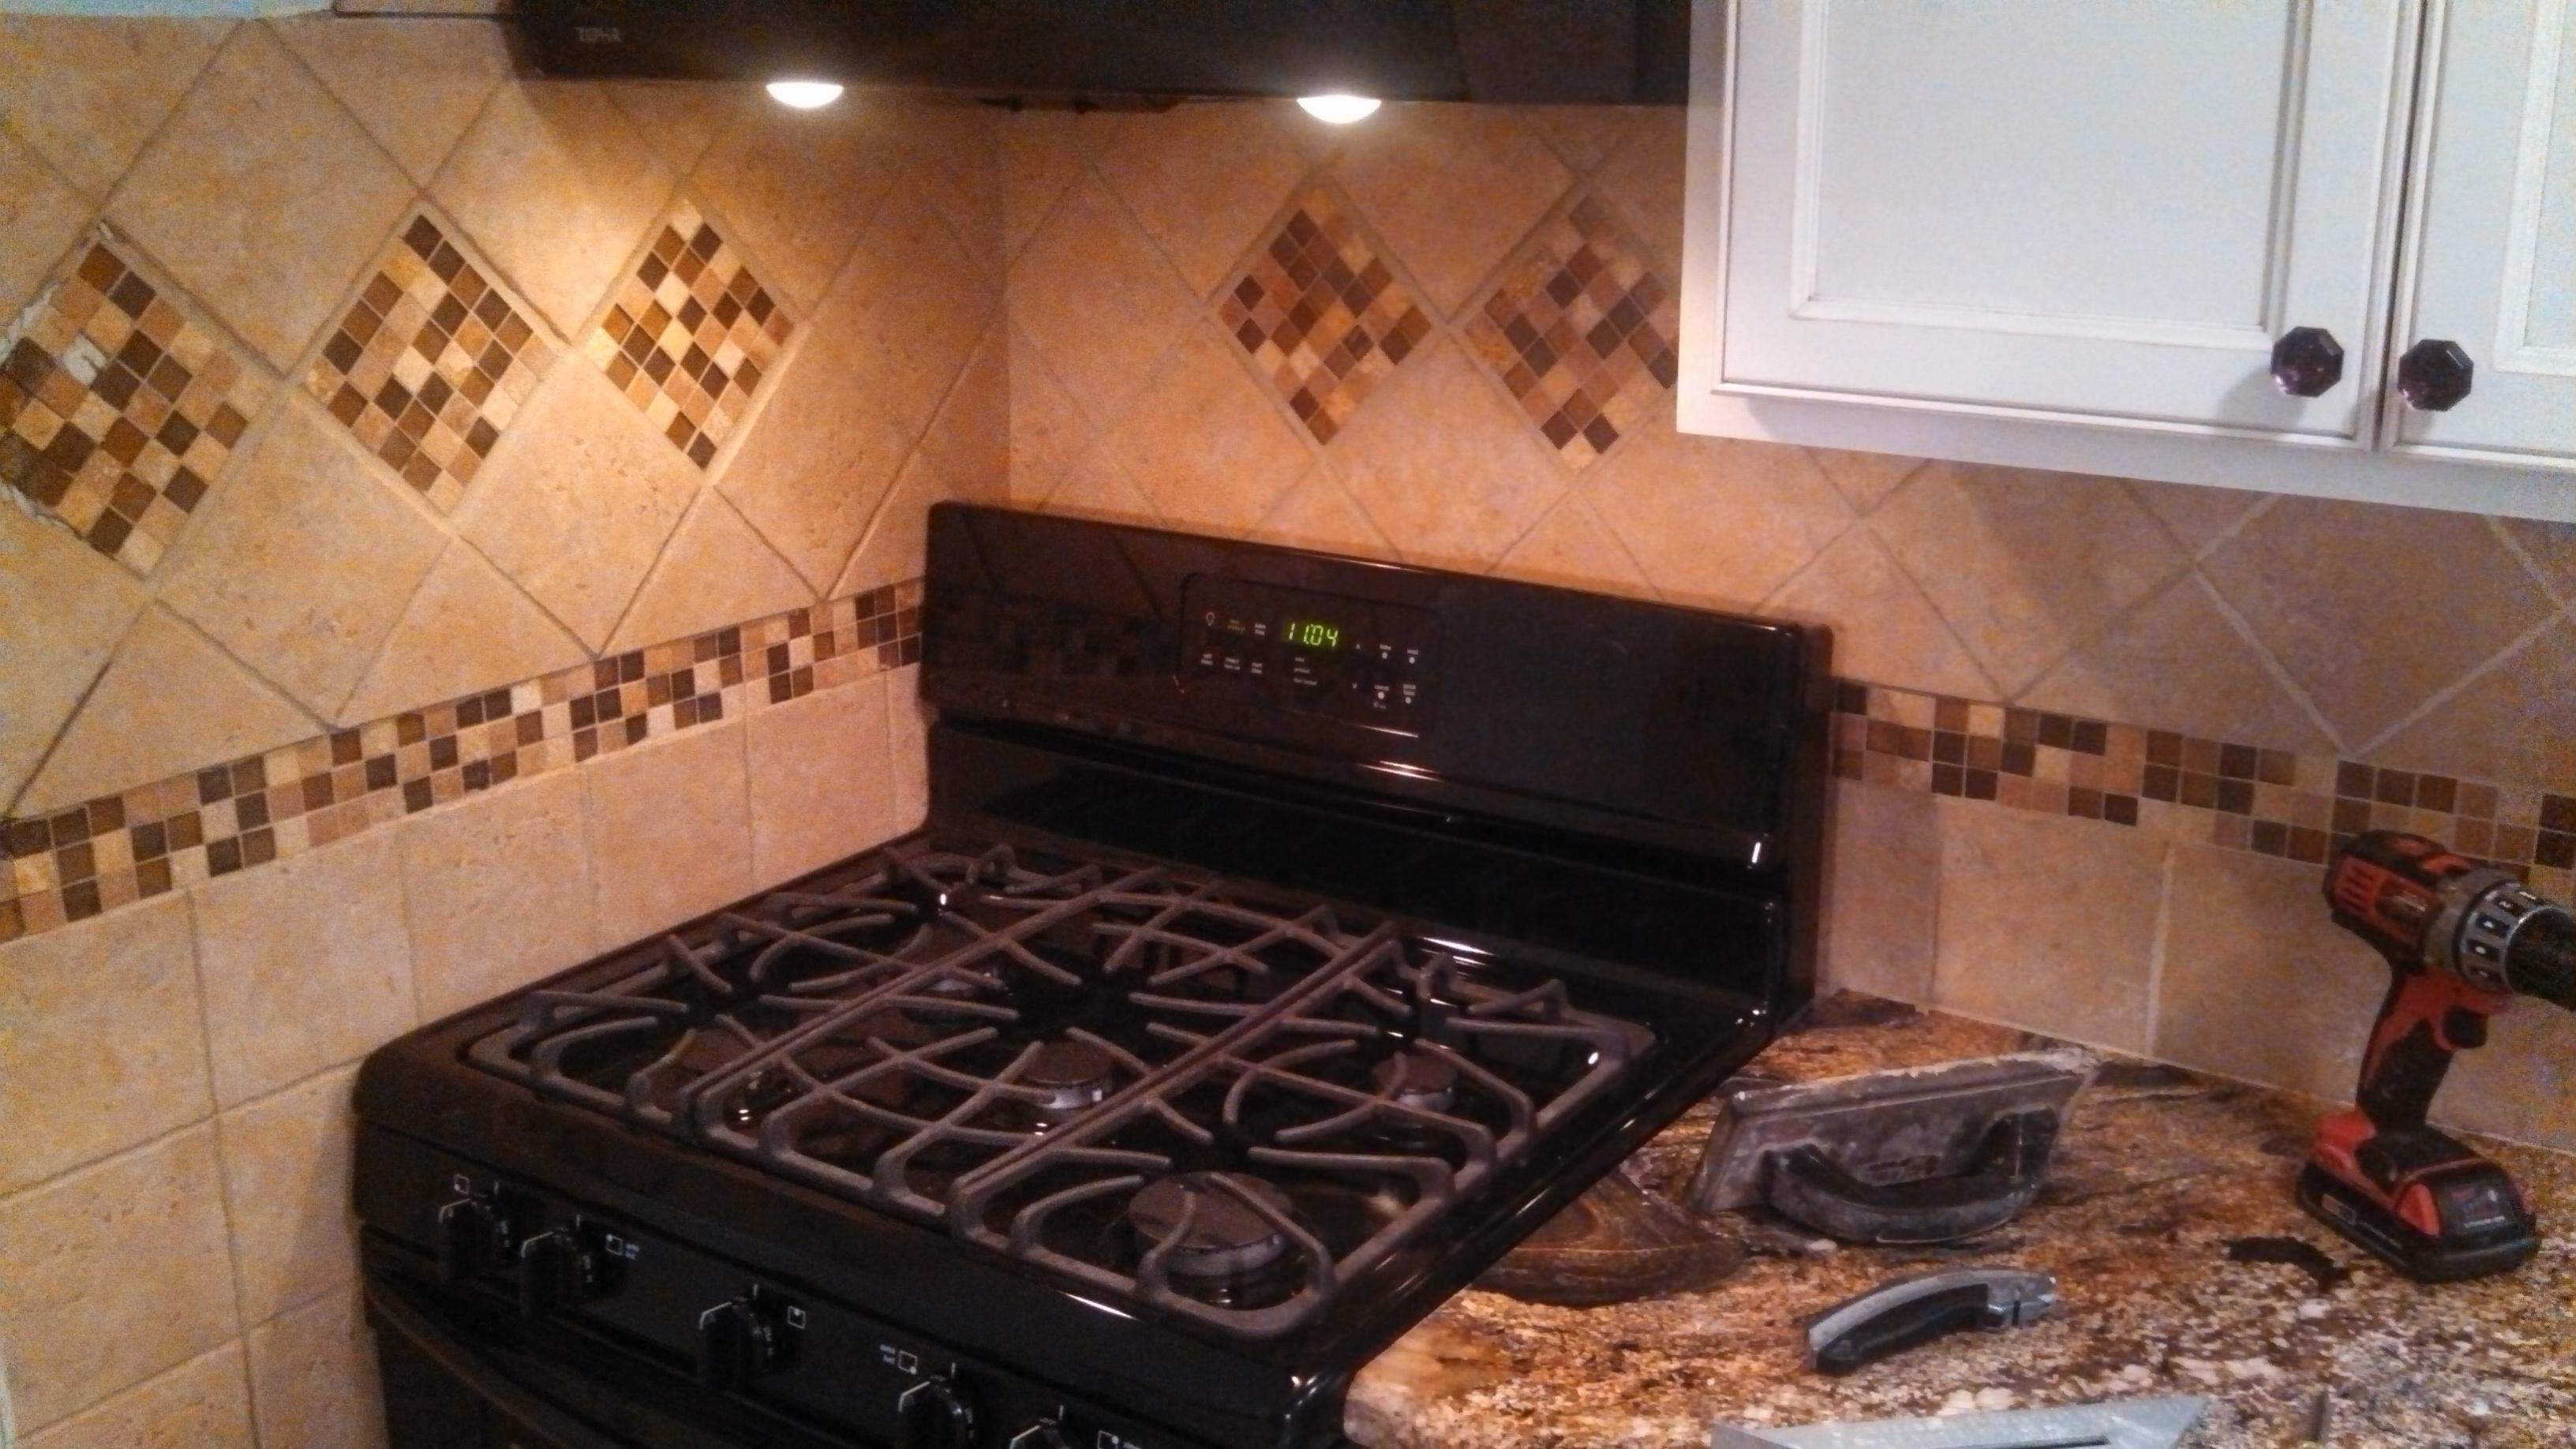 A tile backsplash can be a cost effective way to accent your kitchen remodel, or give a fresh face lift to your current kitchen space.